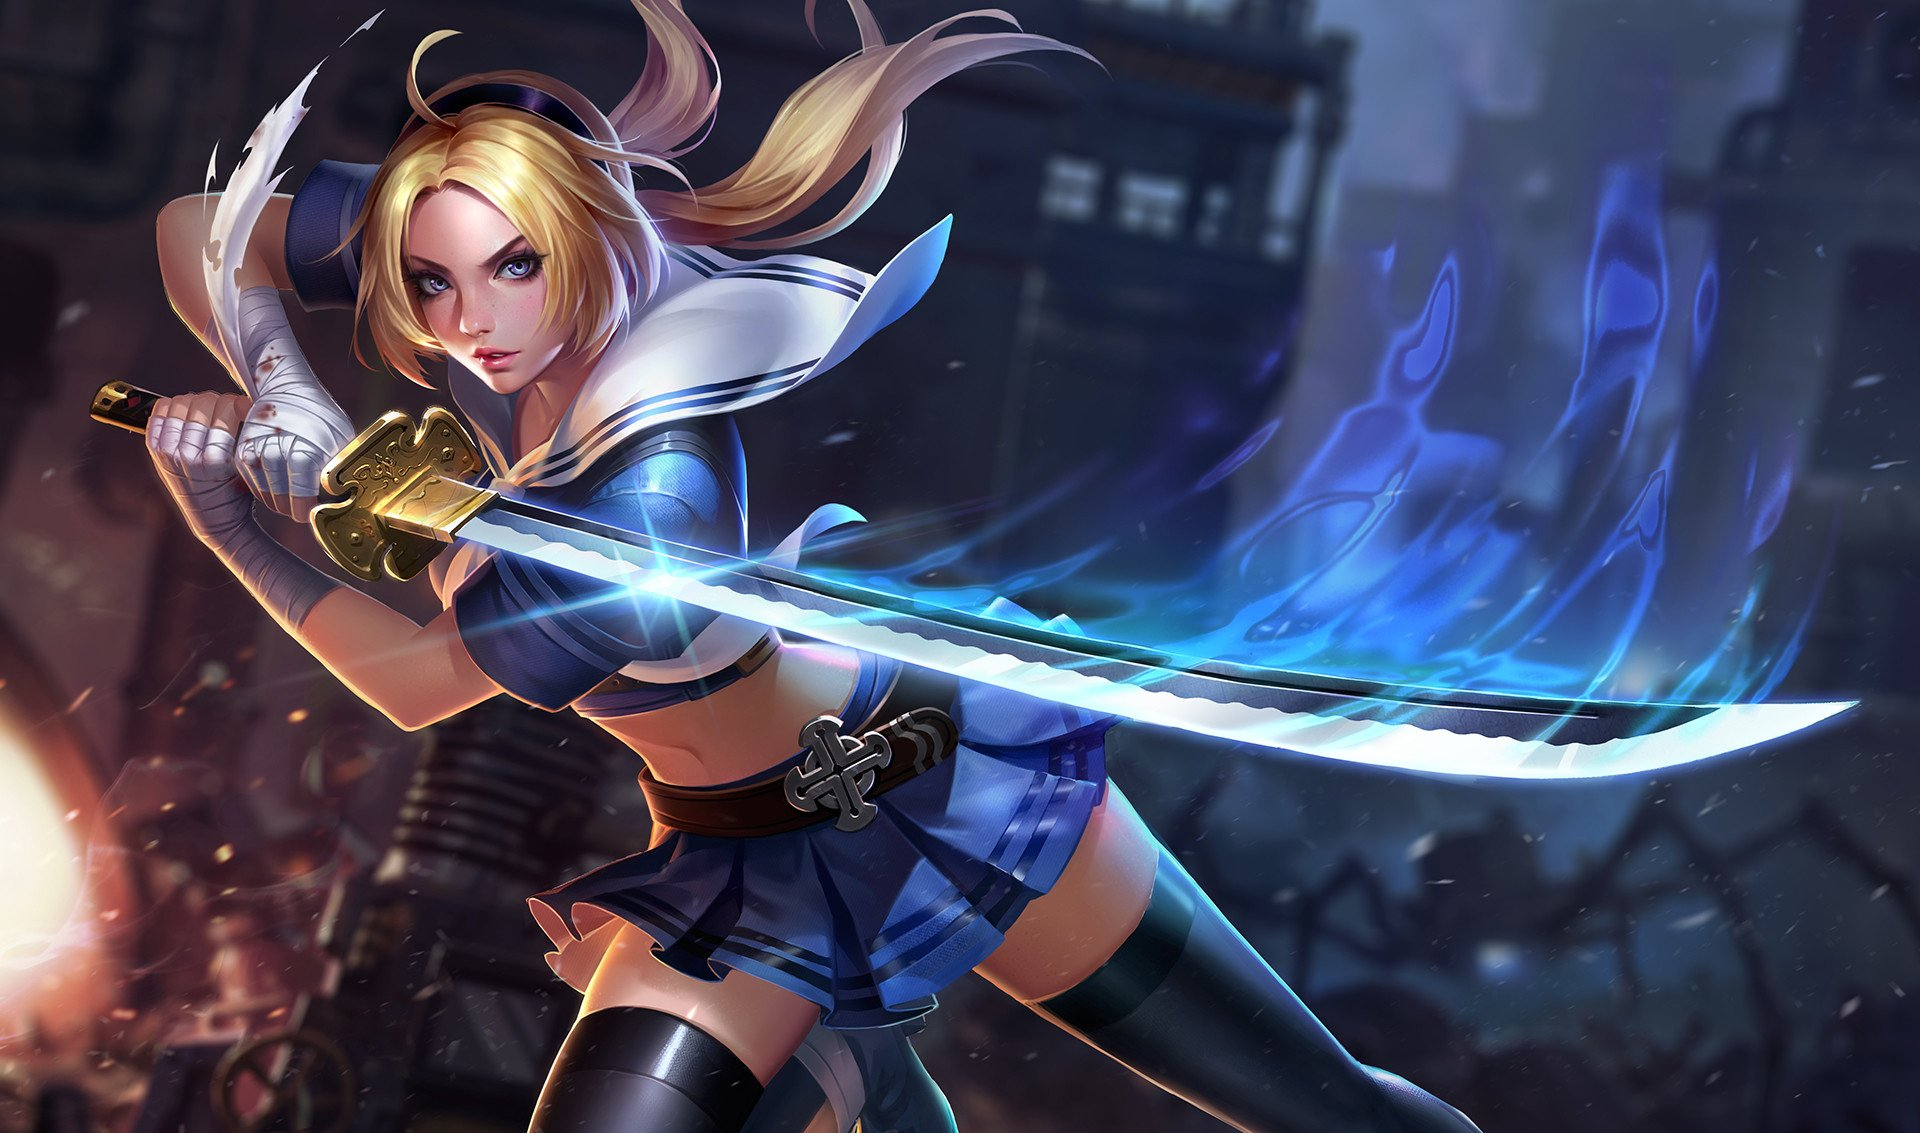 Arena of Valor HD Wallpaper | Background Image | 1920x1133 | ID:902112 - Wallpaper Abyss